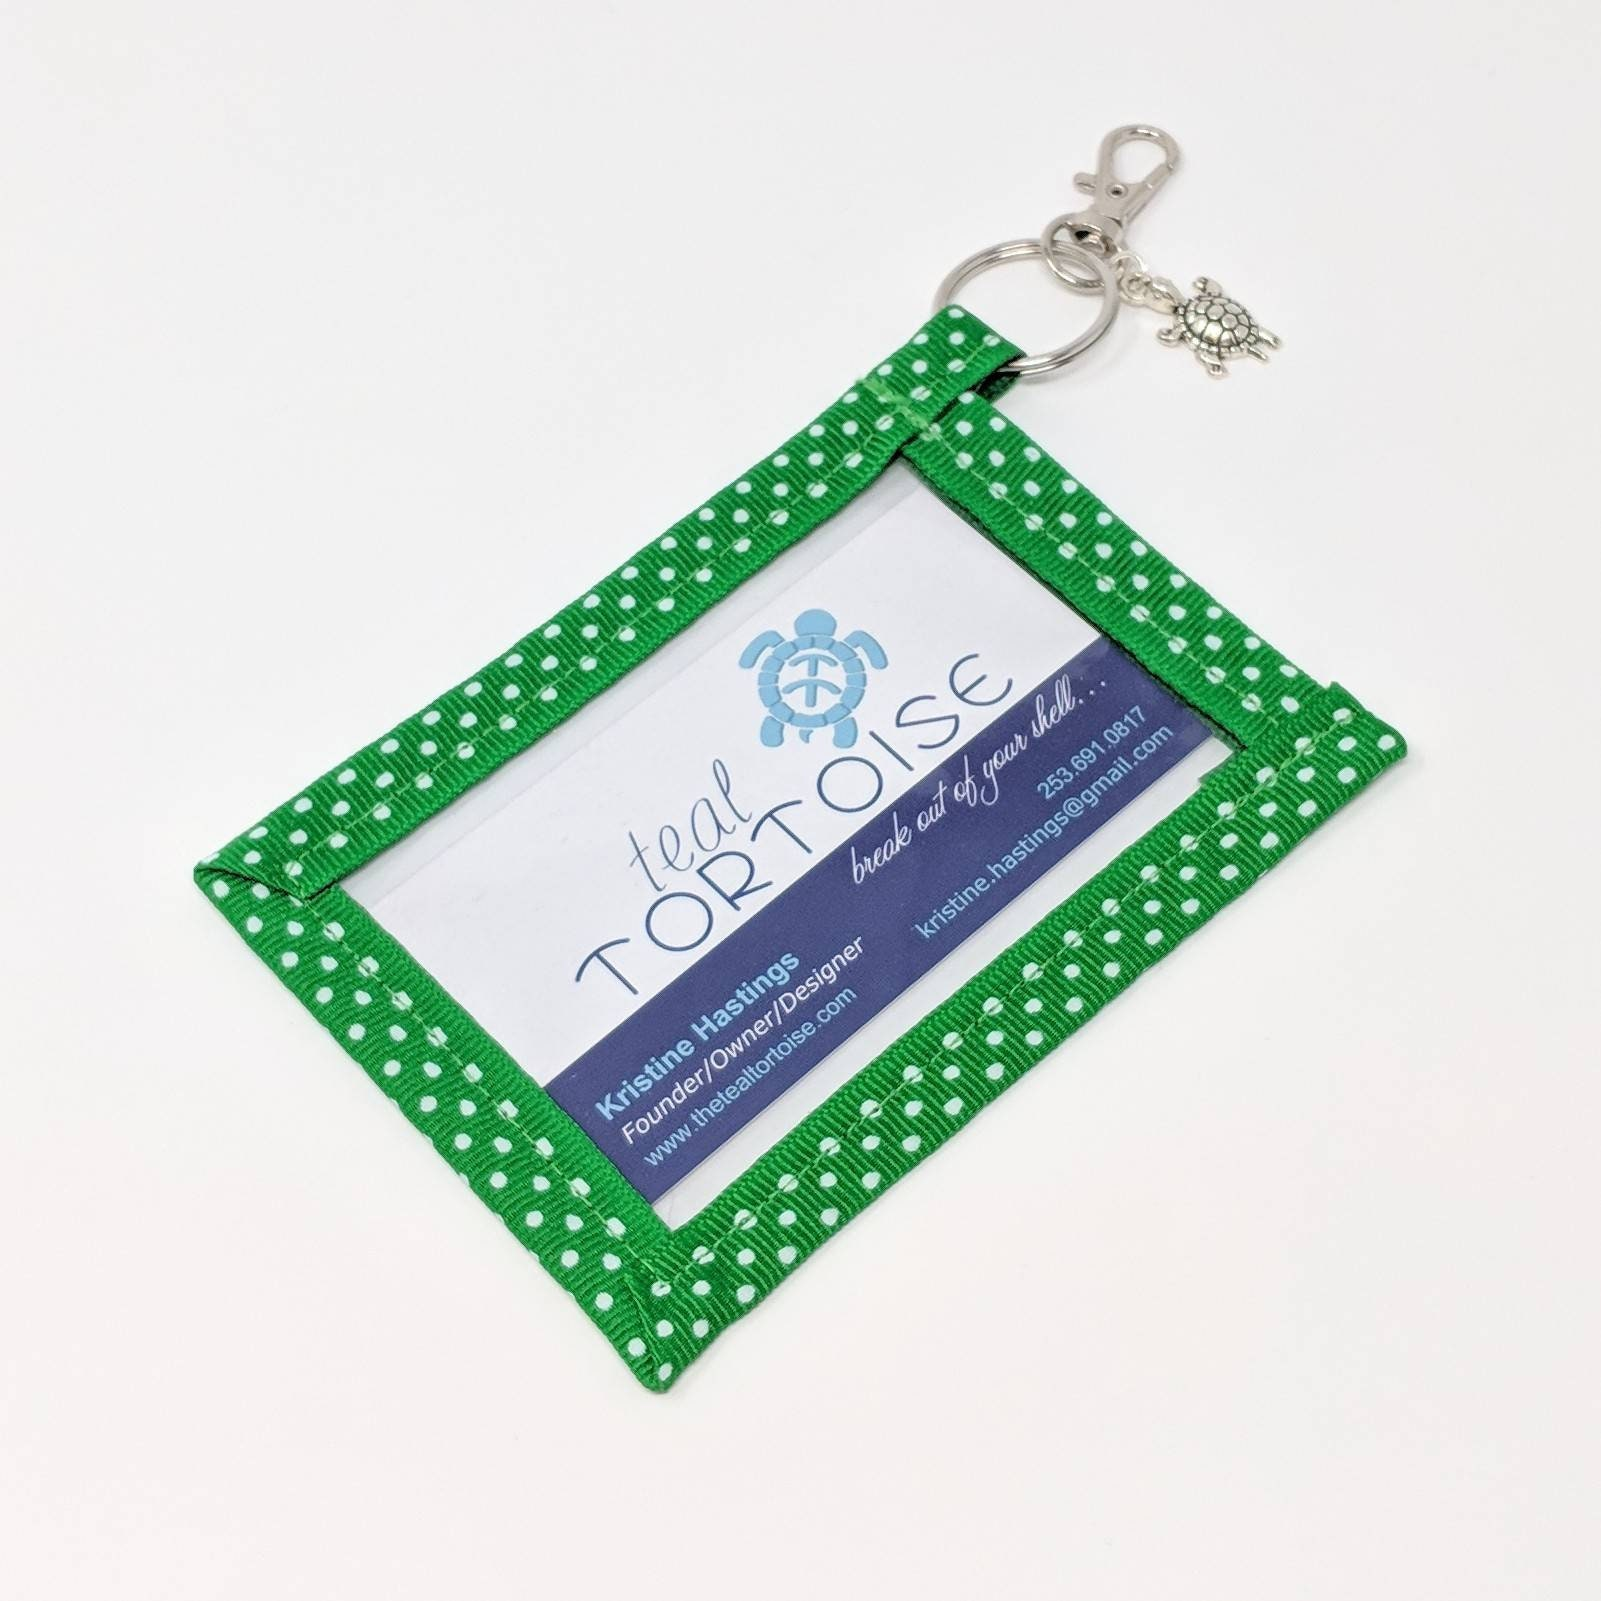 Keyring Business Card Holder - Standard size - Business Card Case ...